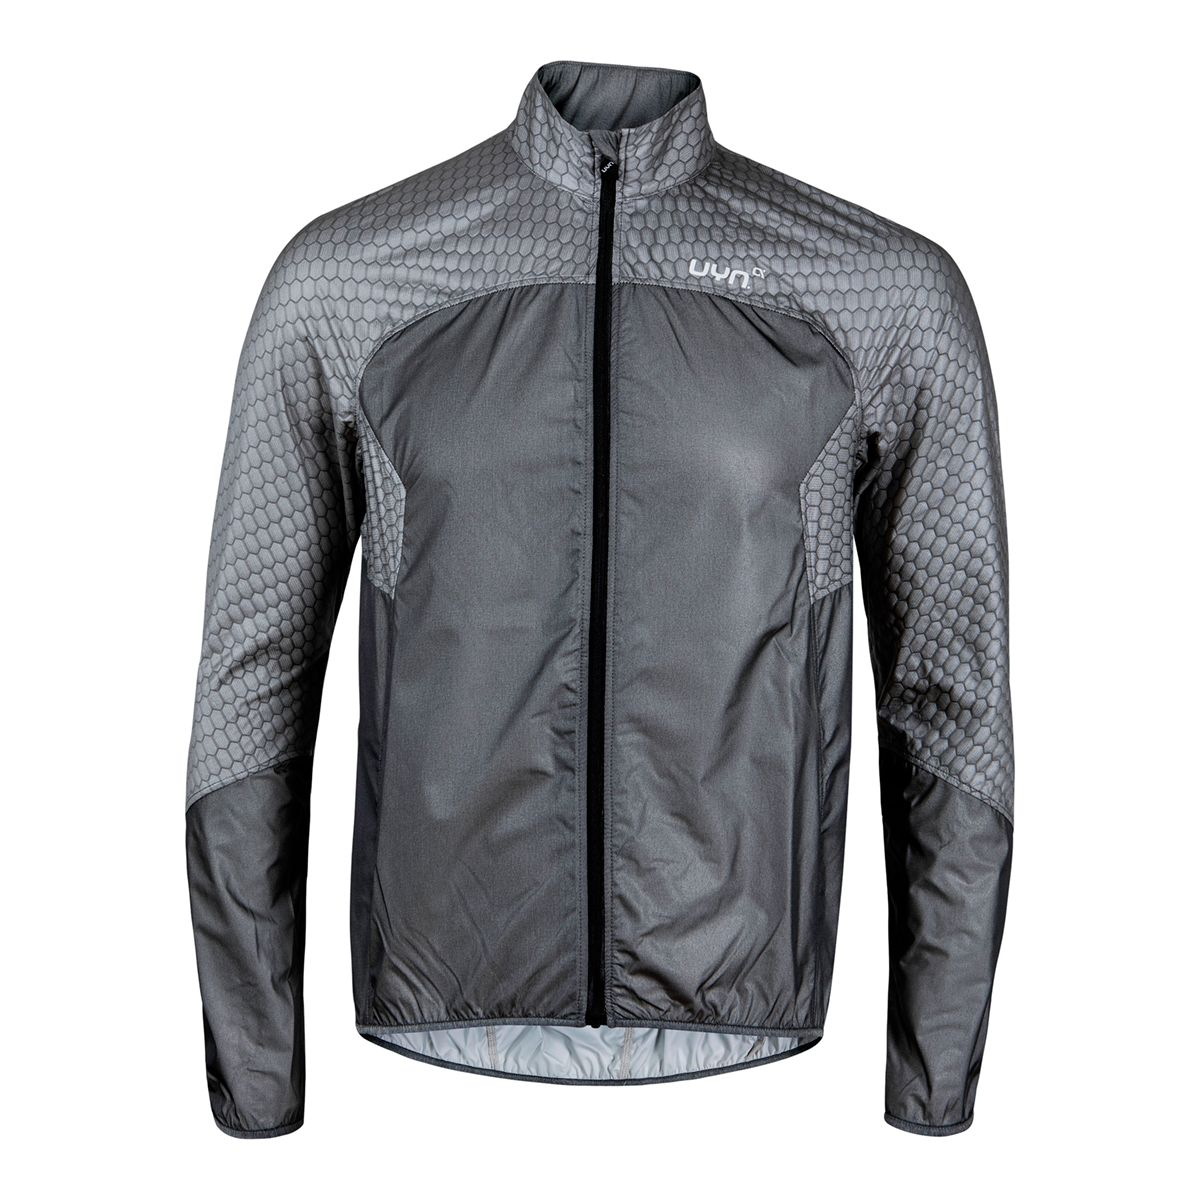 BIKING ALPHA OW RAIN JACKET SHORT SLEEVES MAN Windjacke